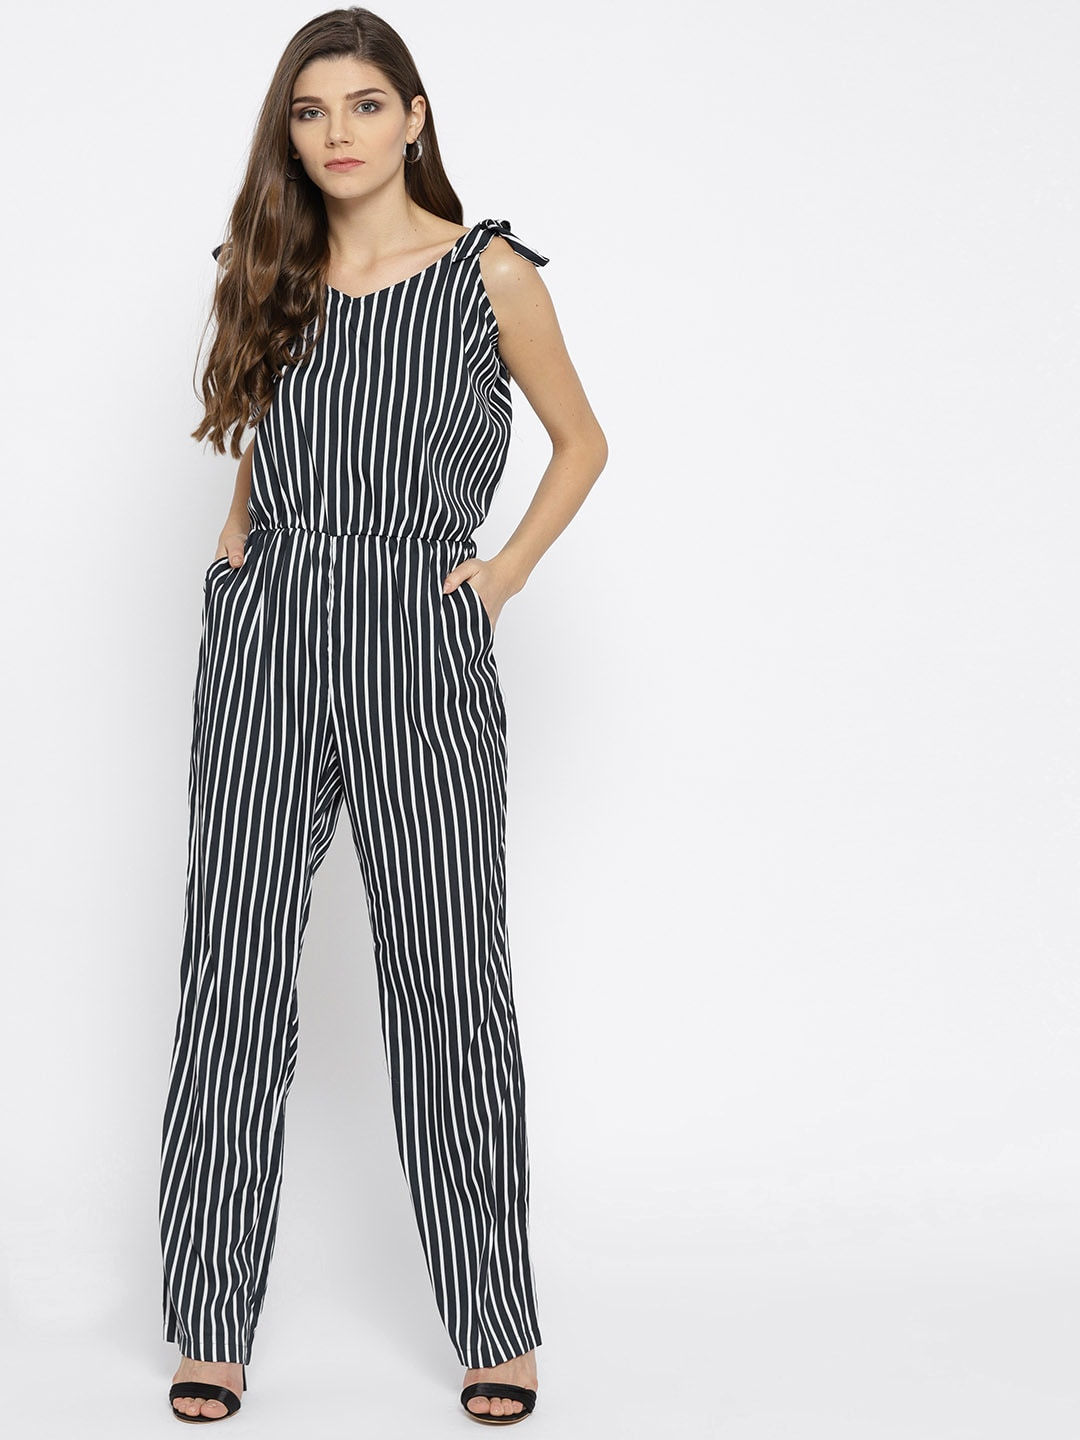 9eb5d704caa Striped Jumpsuit - Buy Striped Jumpsuit online in India